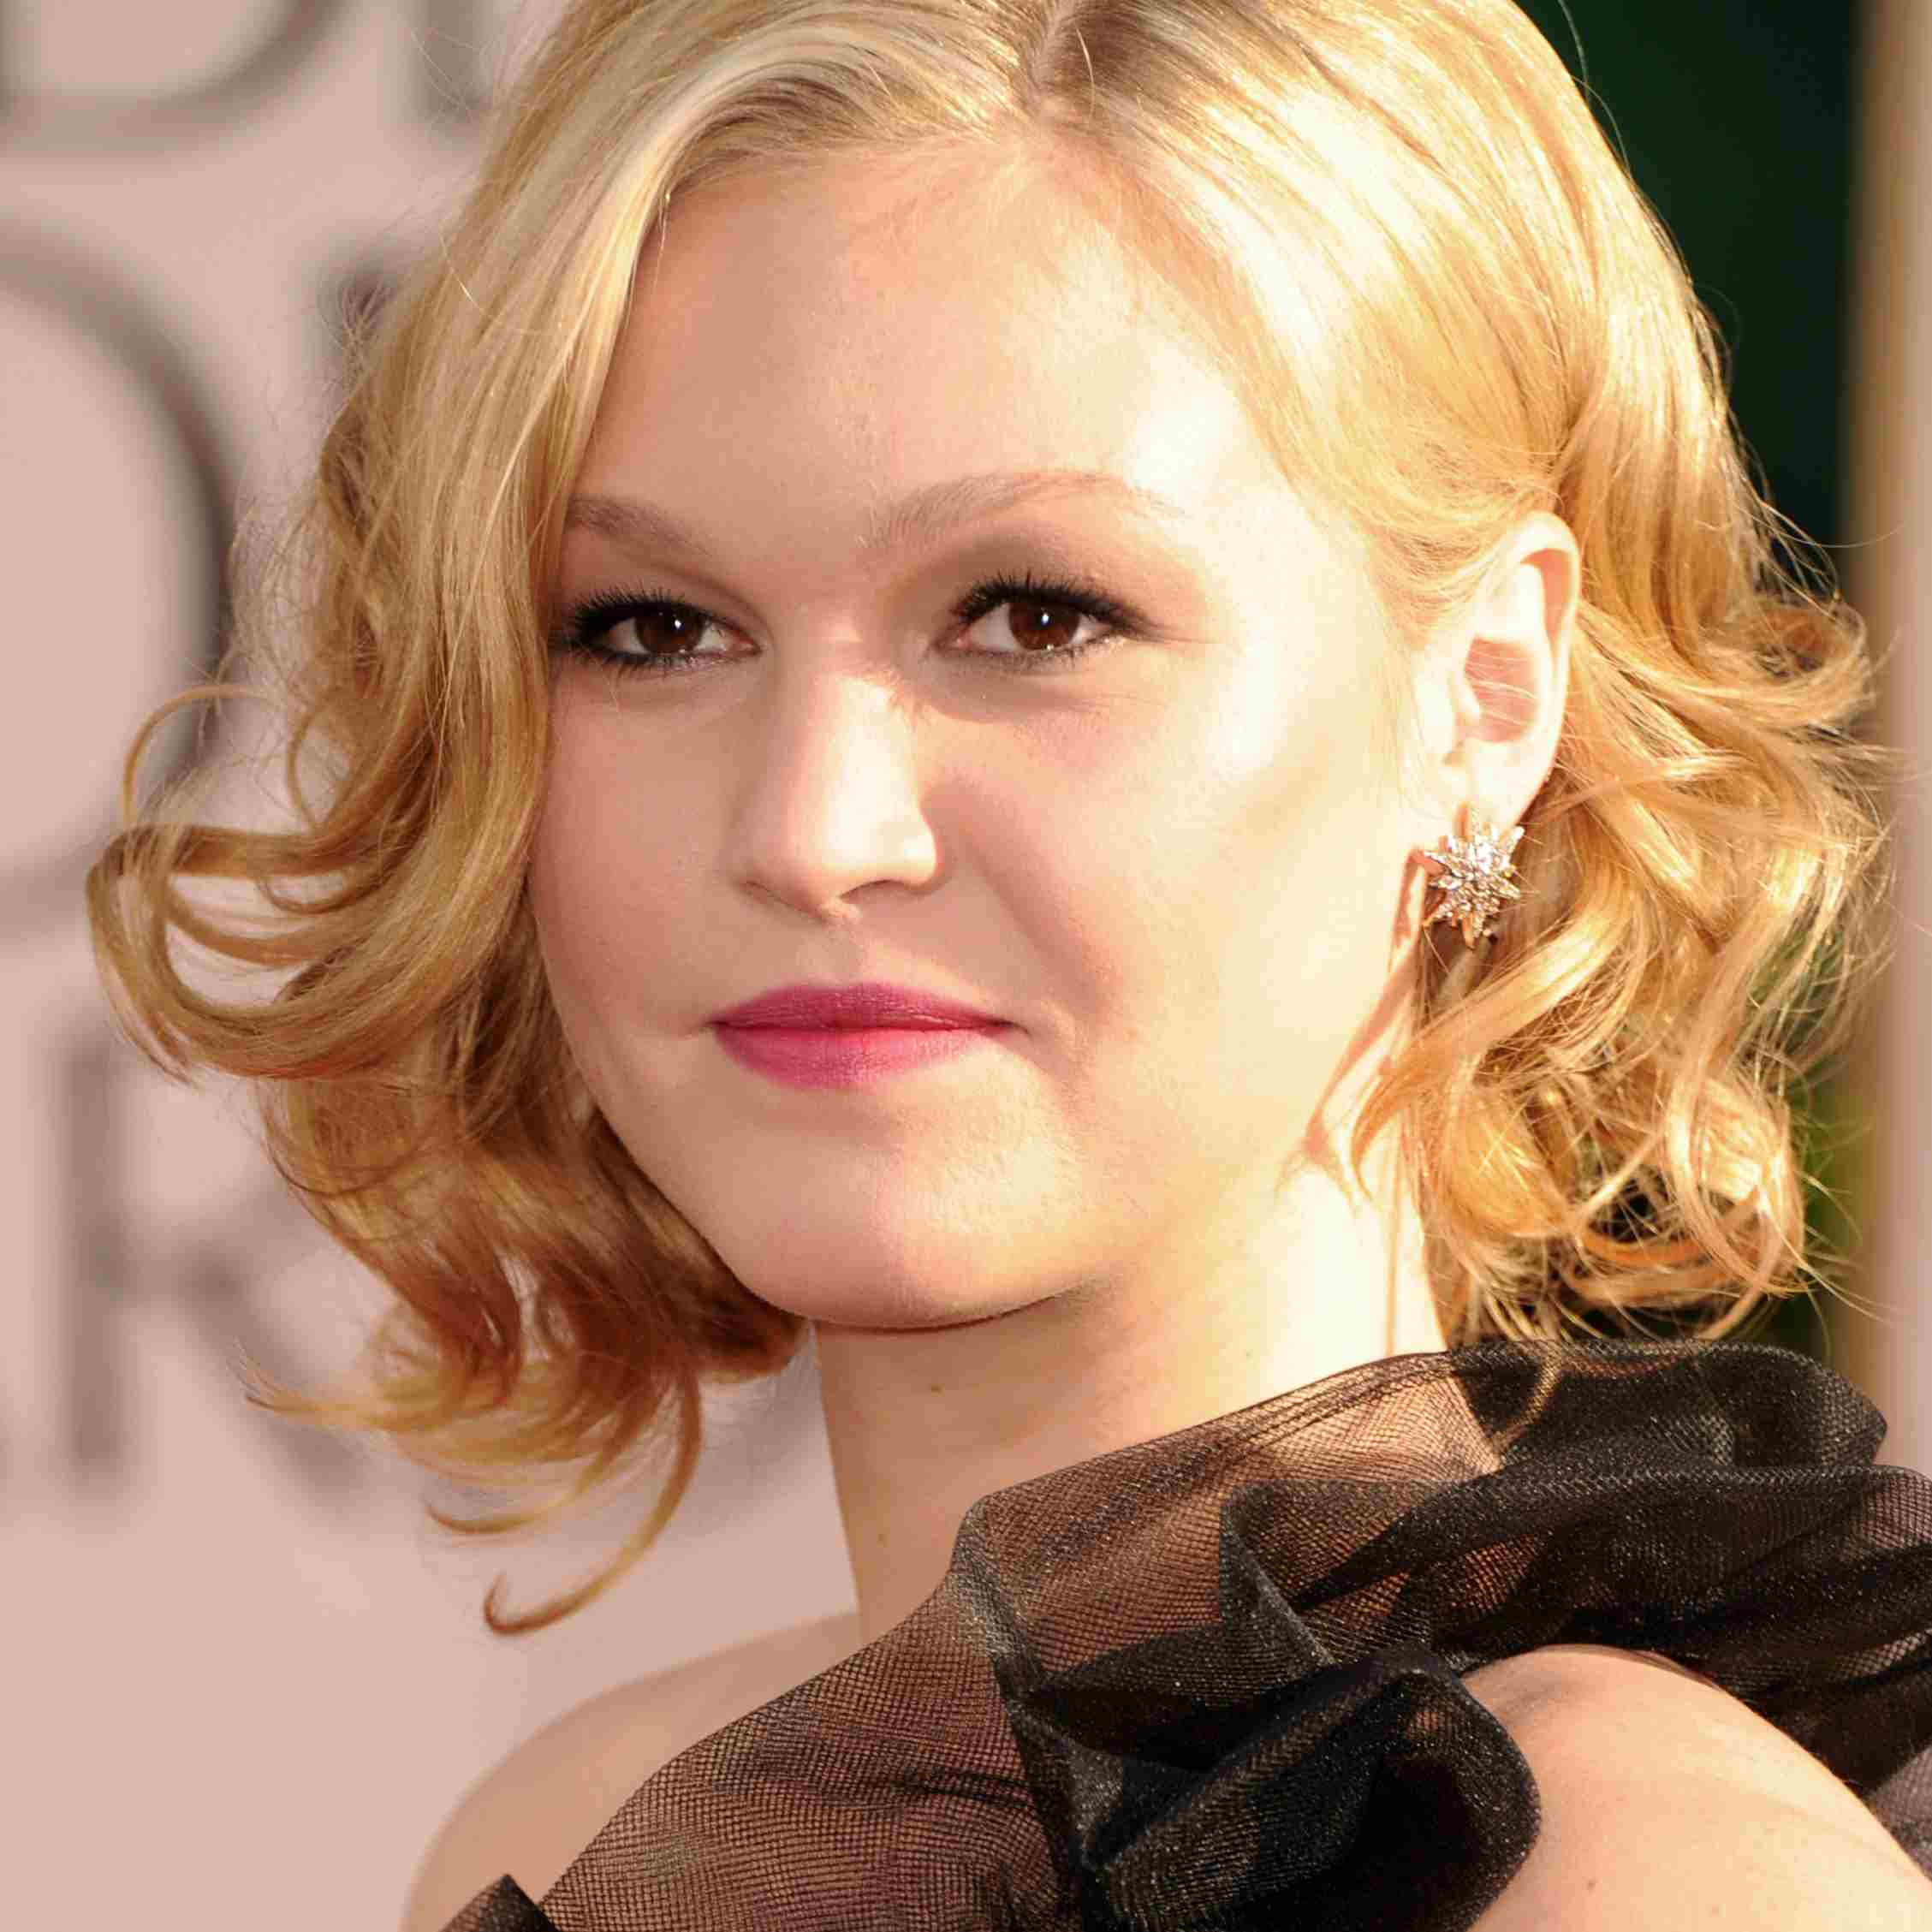 Short Prom Hairstyles: 24 Gorgeous Styles